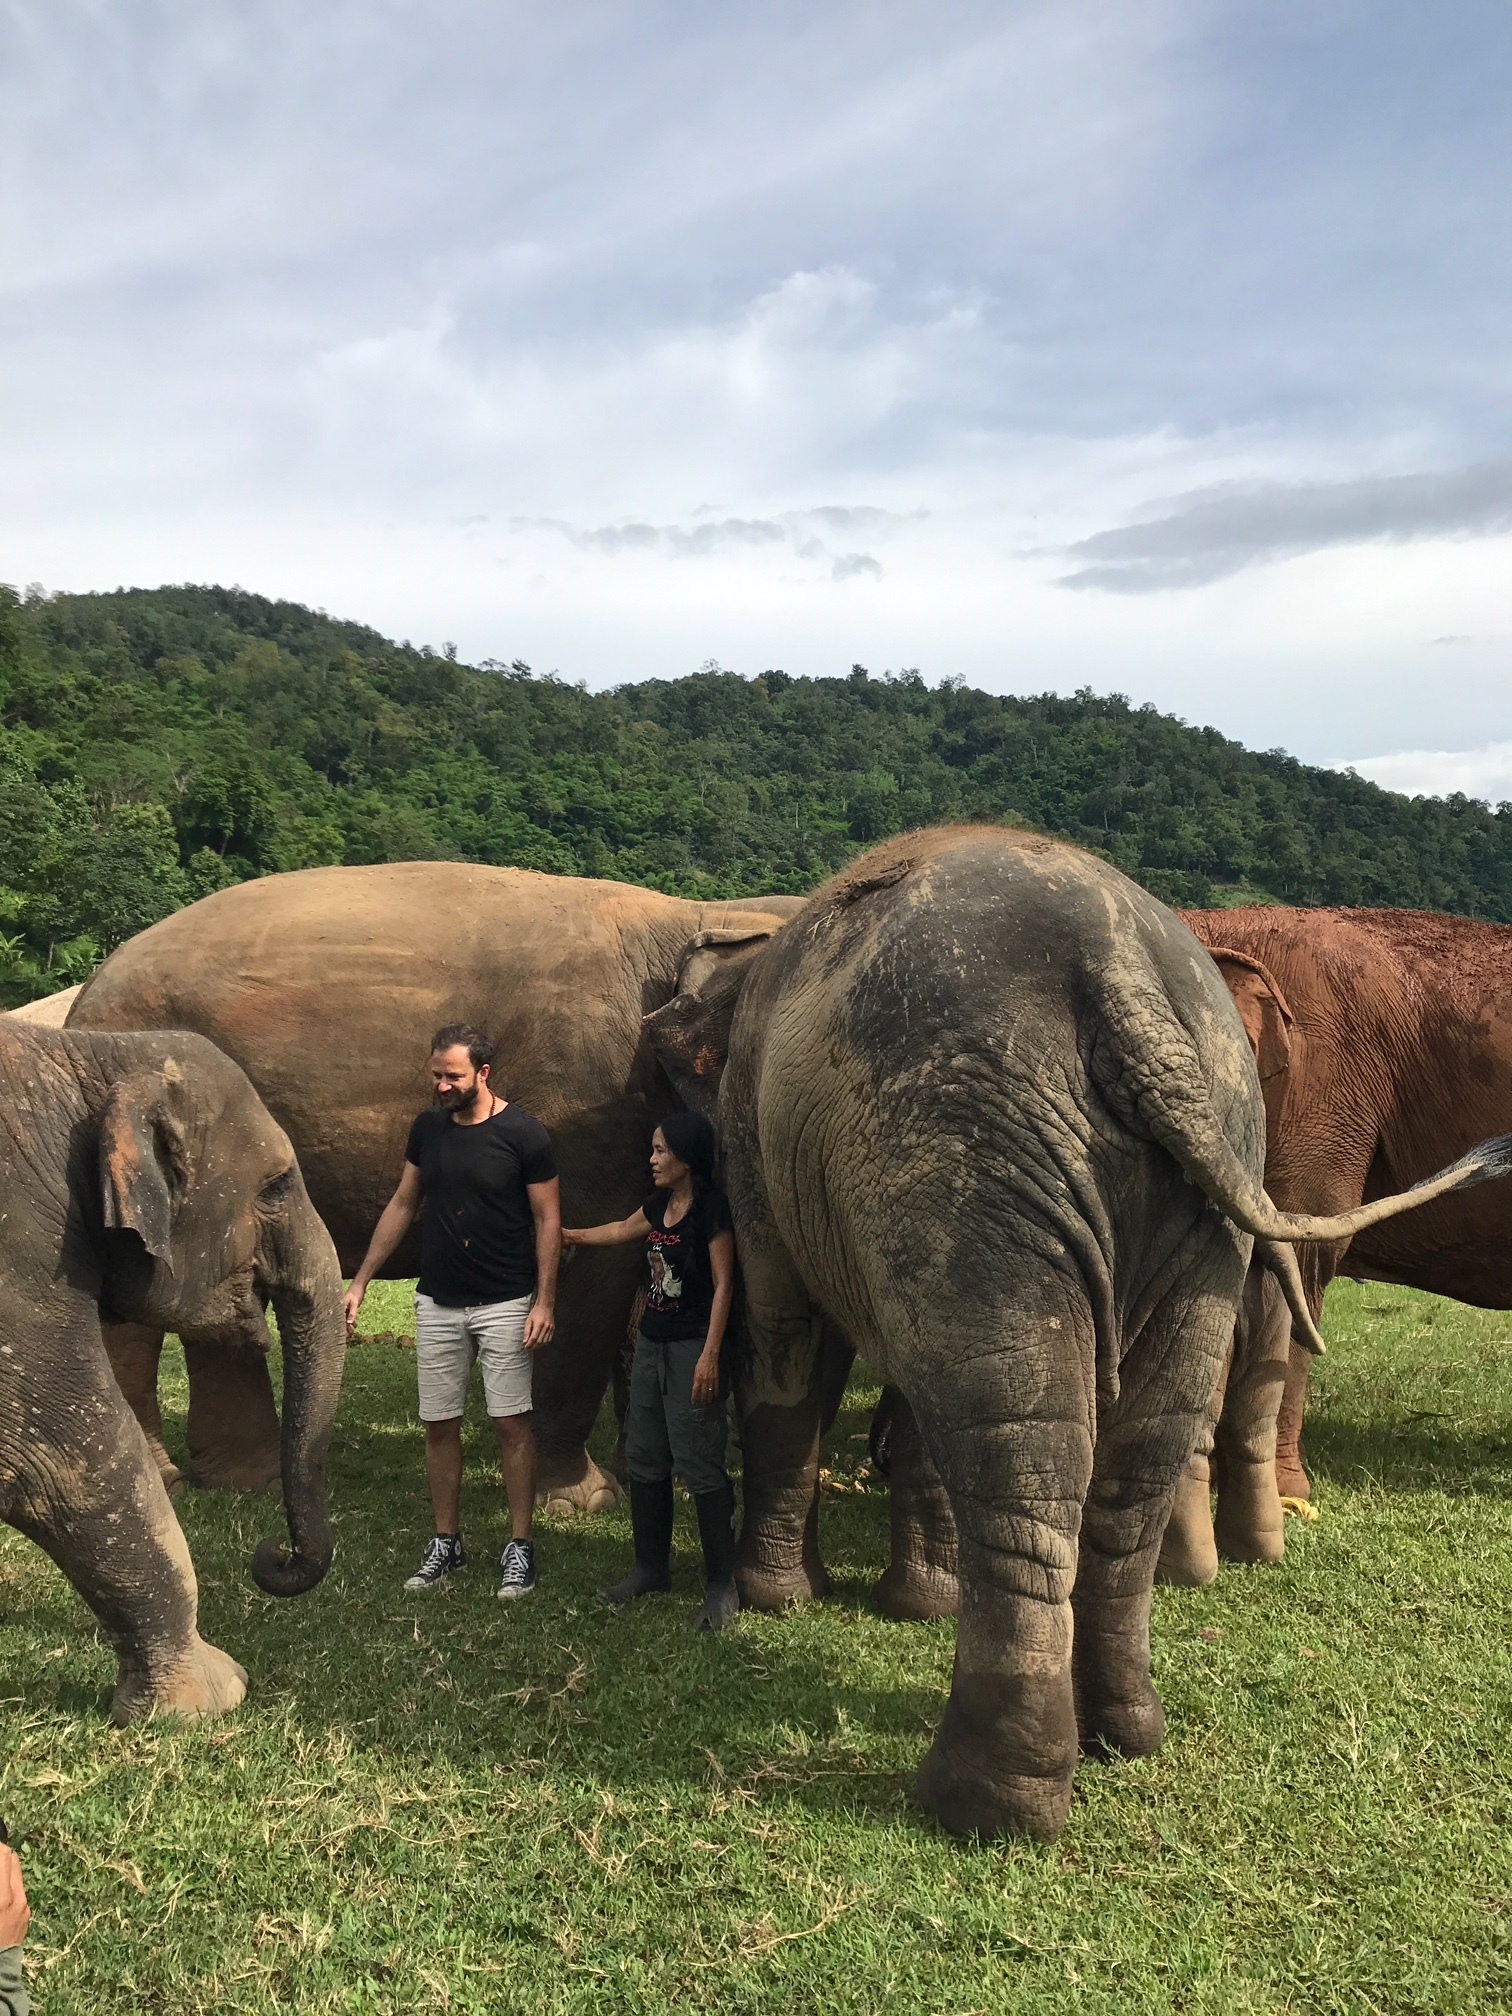 Matthew Shapira with Lek meeting the locals at Elephant Nature Park in Thailand.